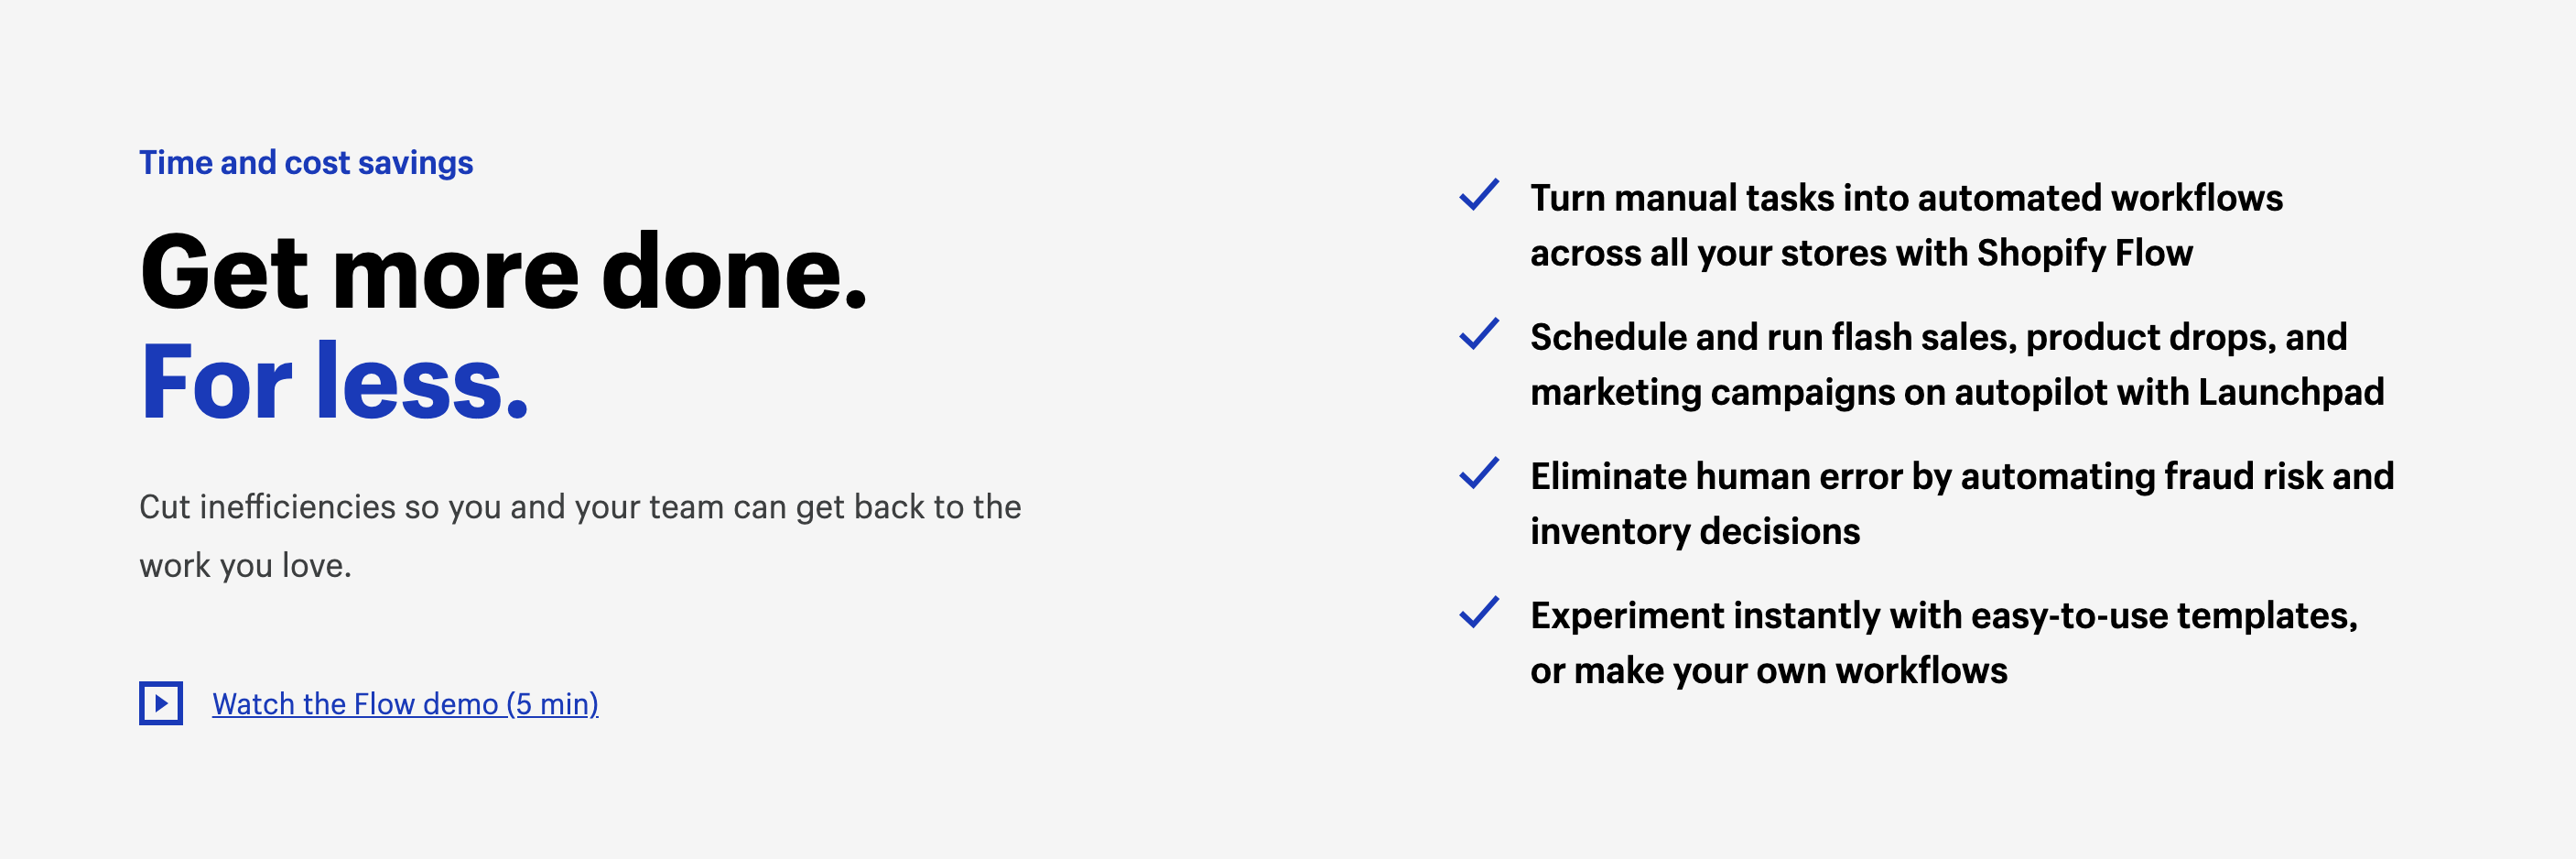 Benefits of Shopify Flow